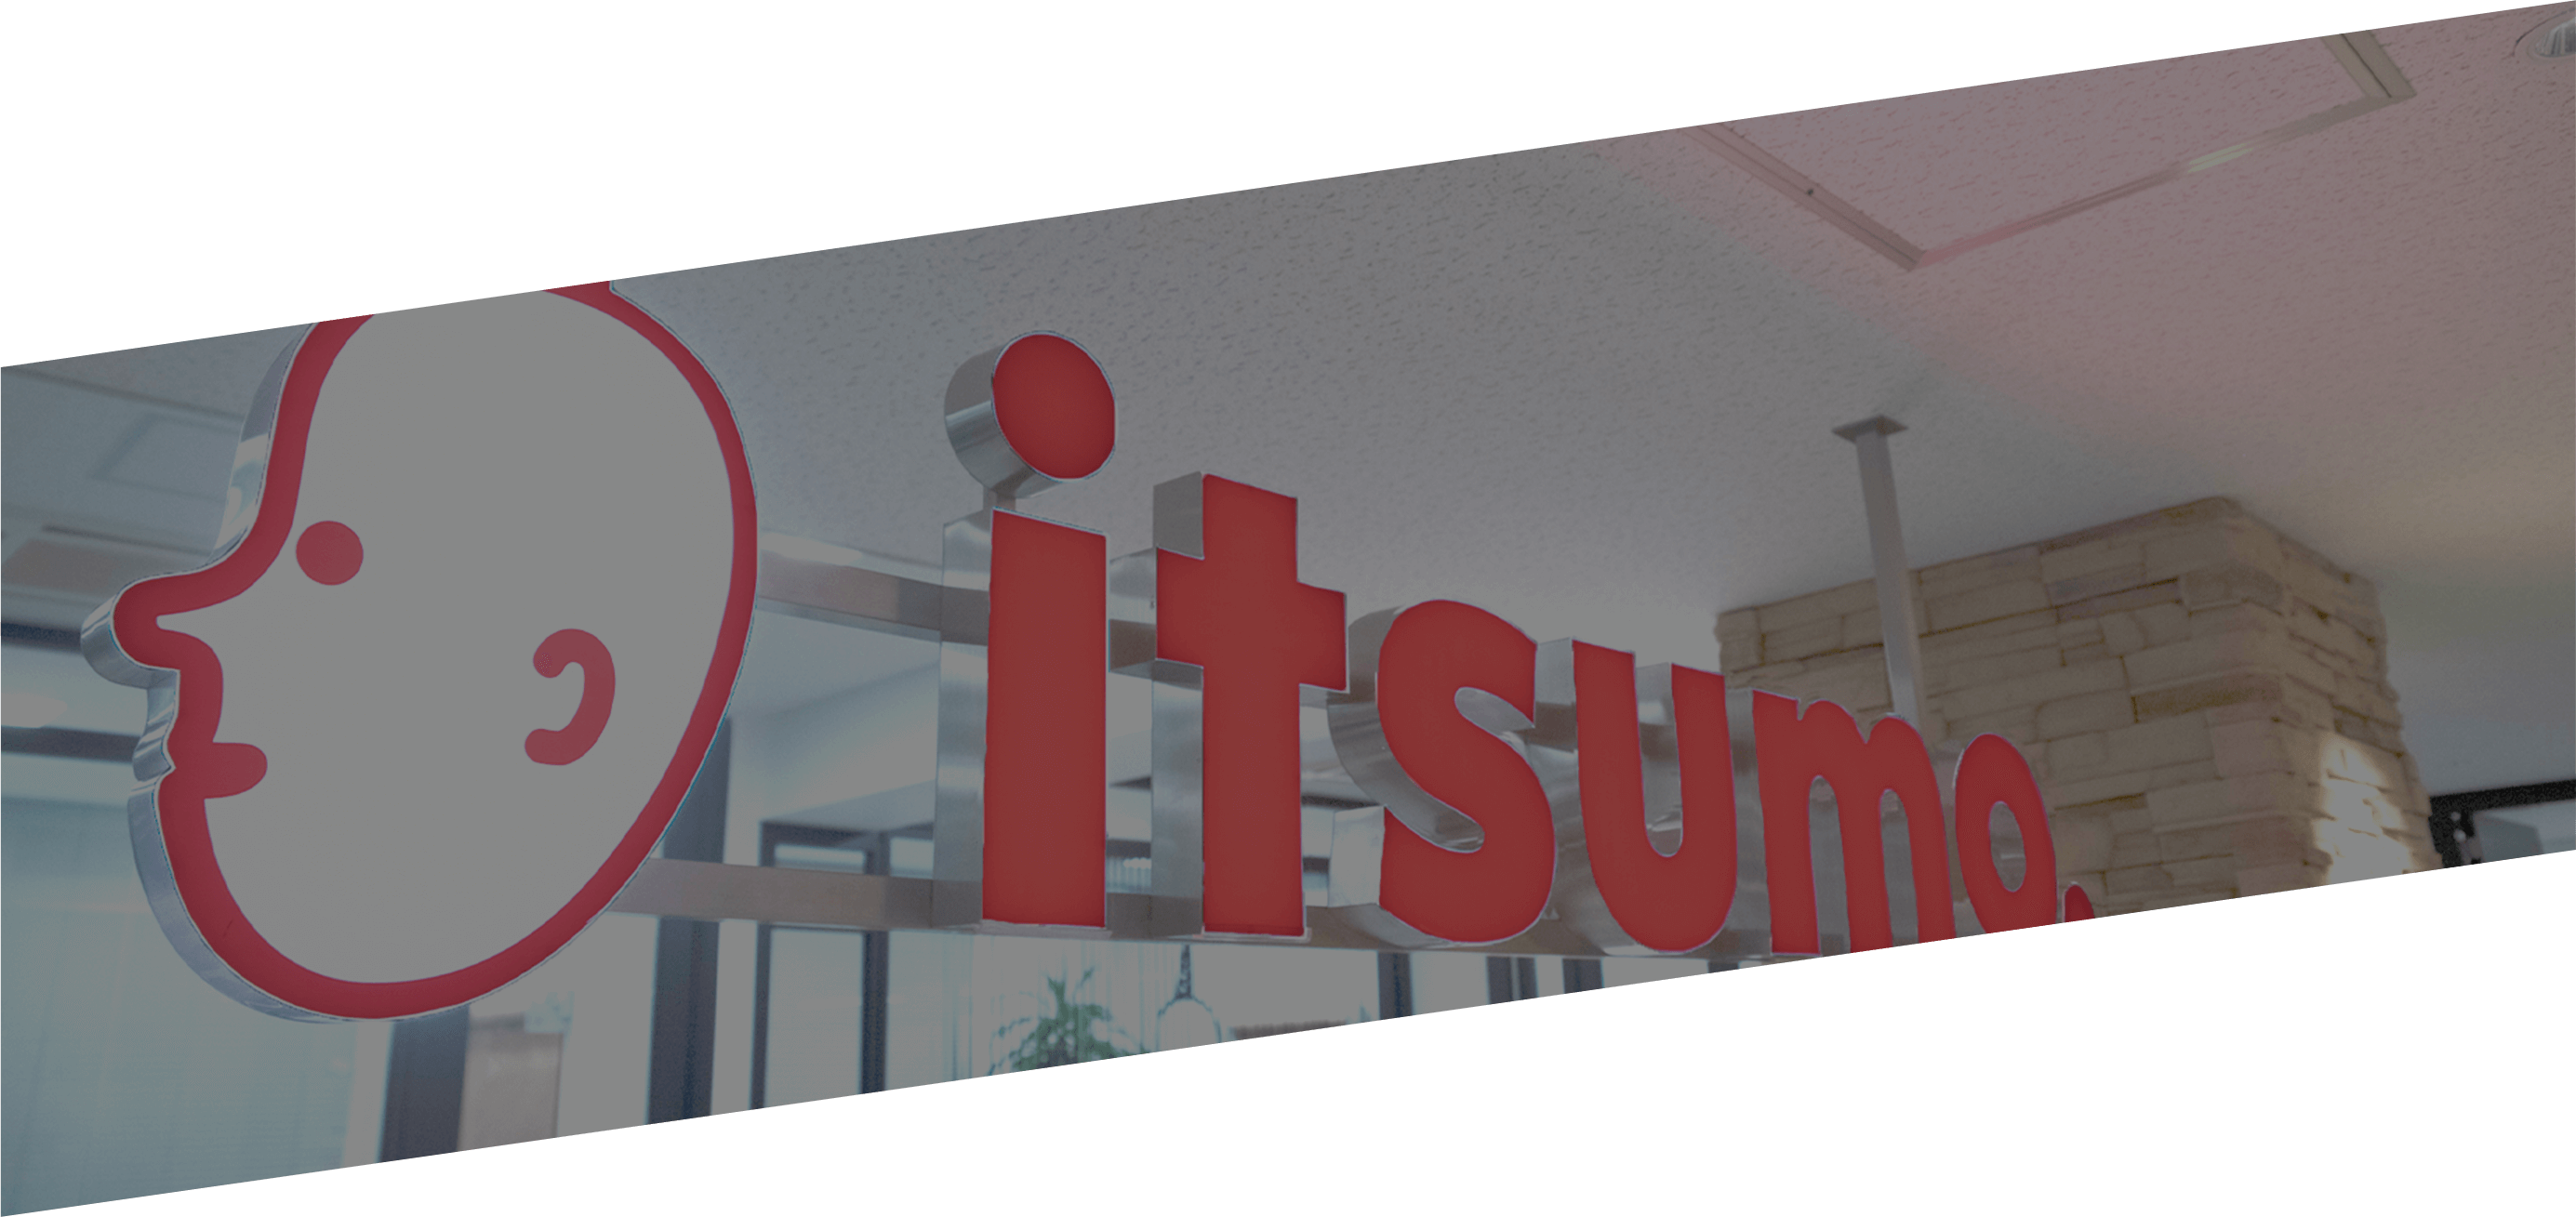 About itsumo.